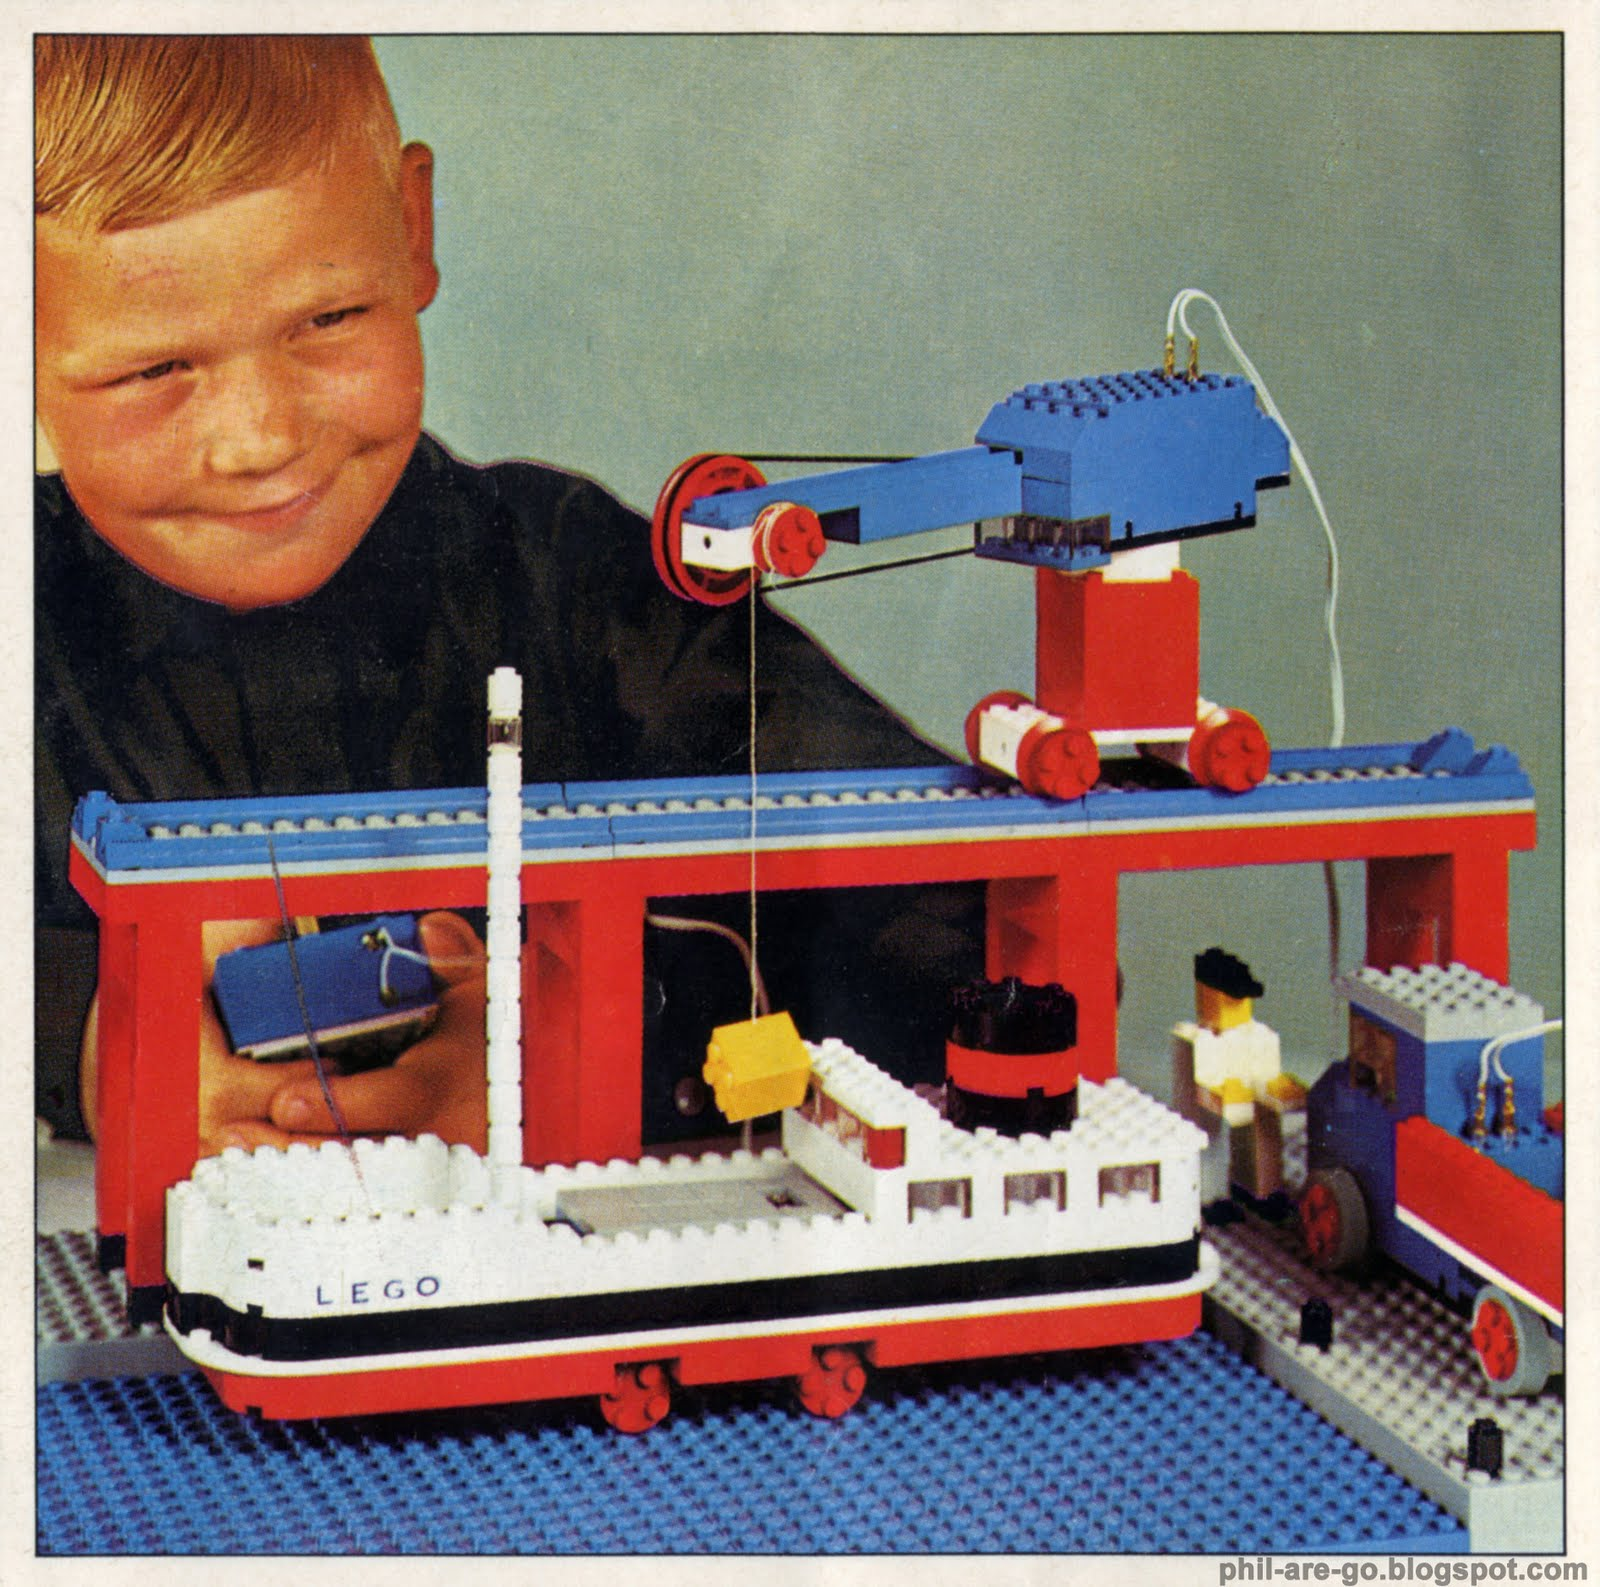 Why Do You Think Lego's Outsourcing Failed?